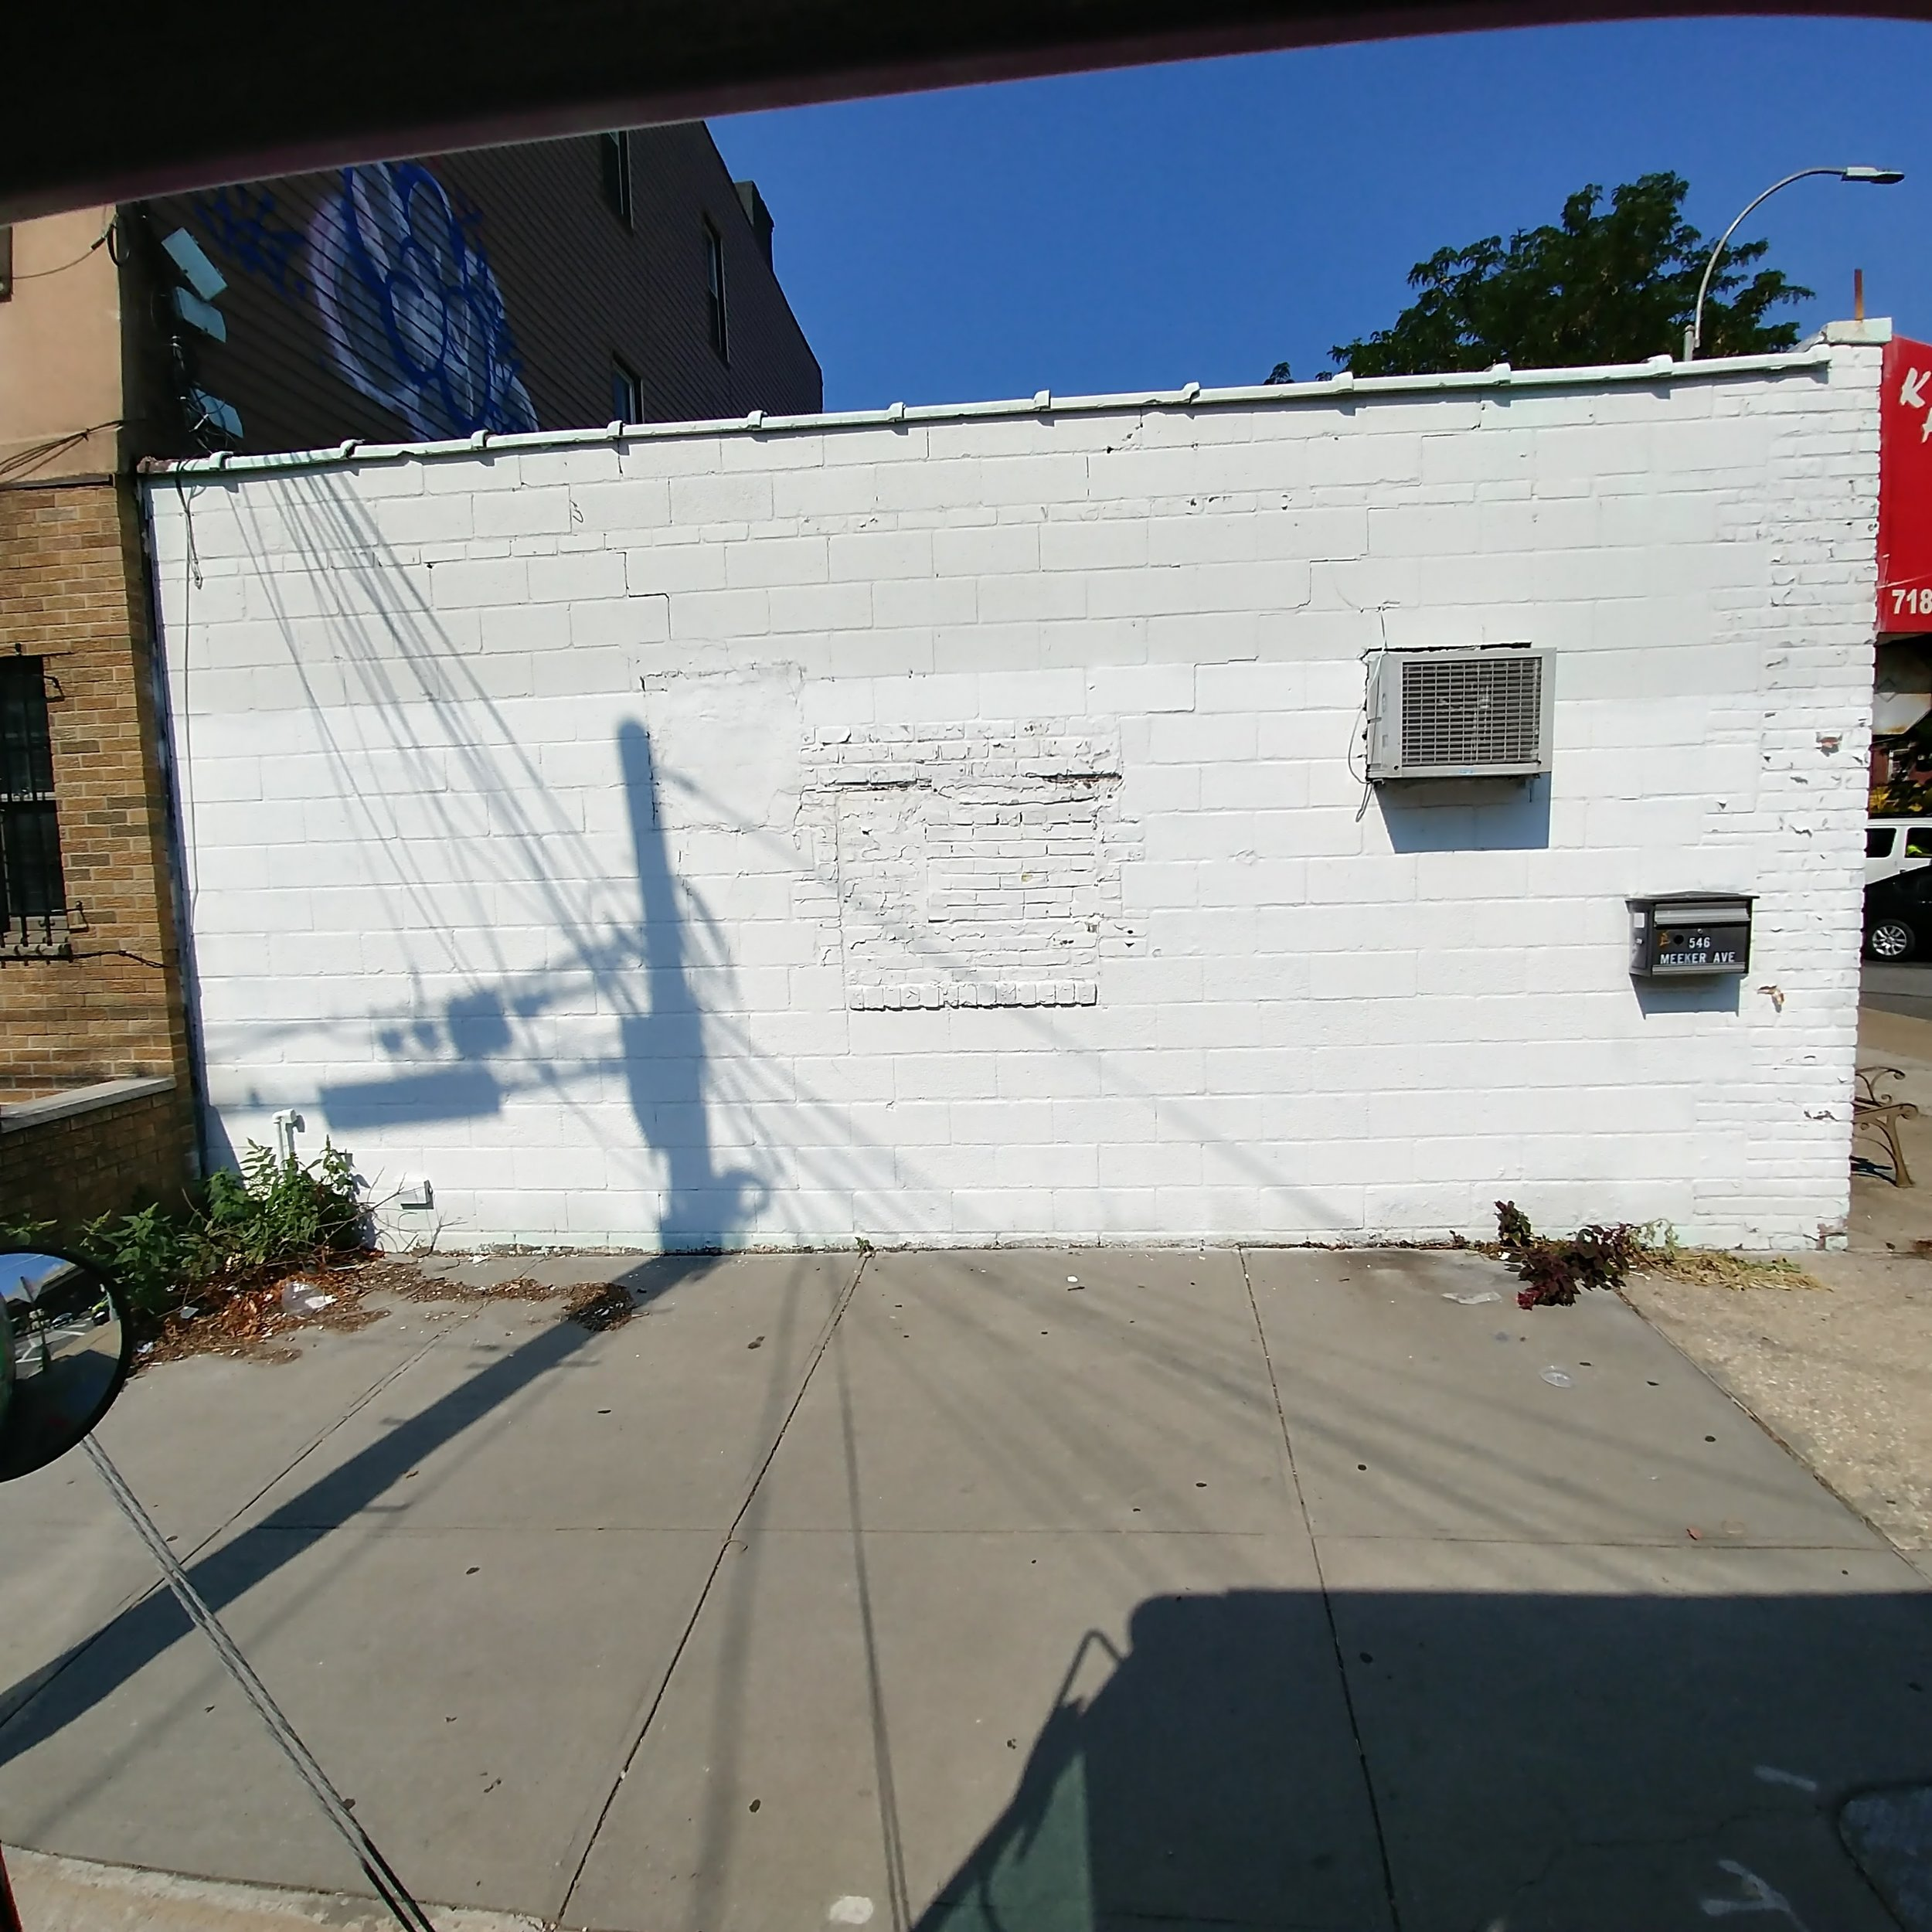 Not only that, but the owner of the Karate studio has another wall available...!